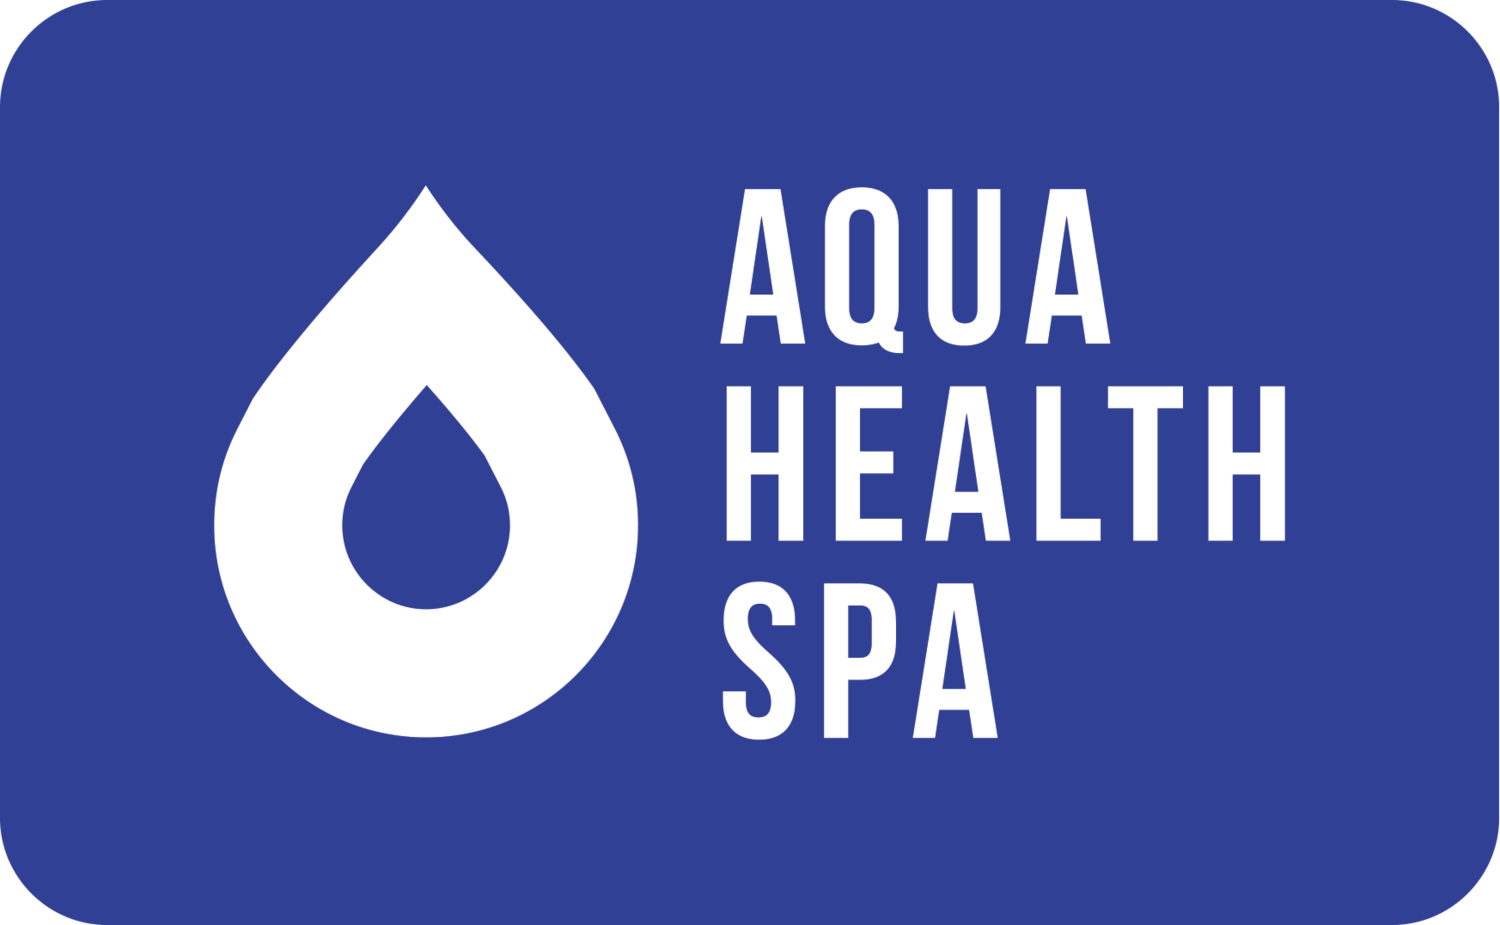 colonic irrigation clinic Bali - Aqua Health